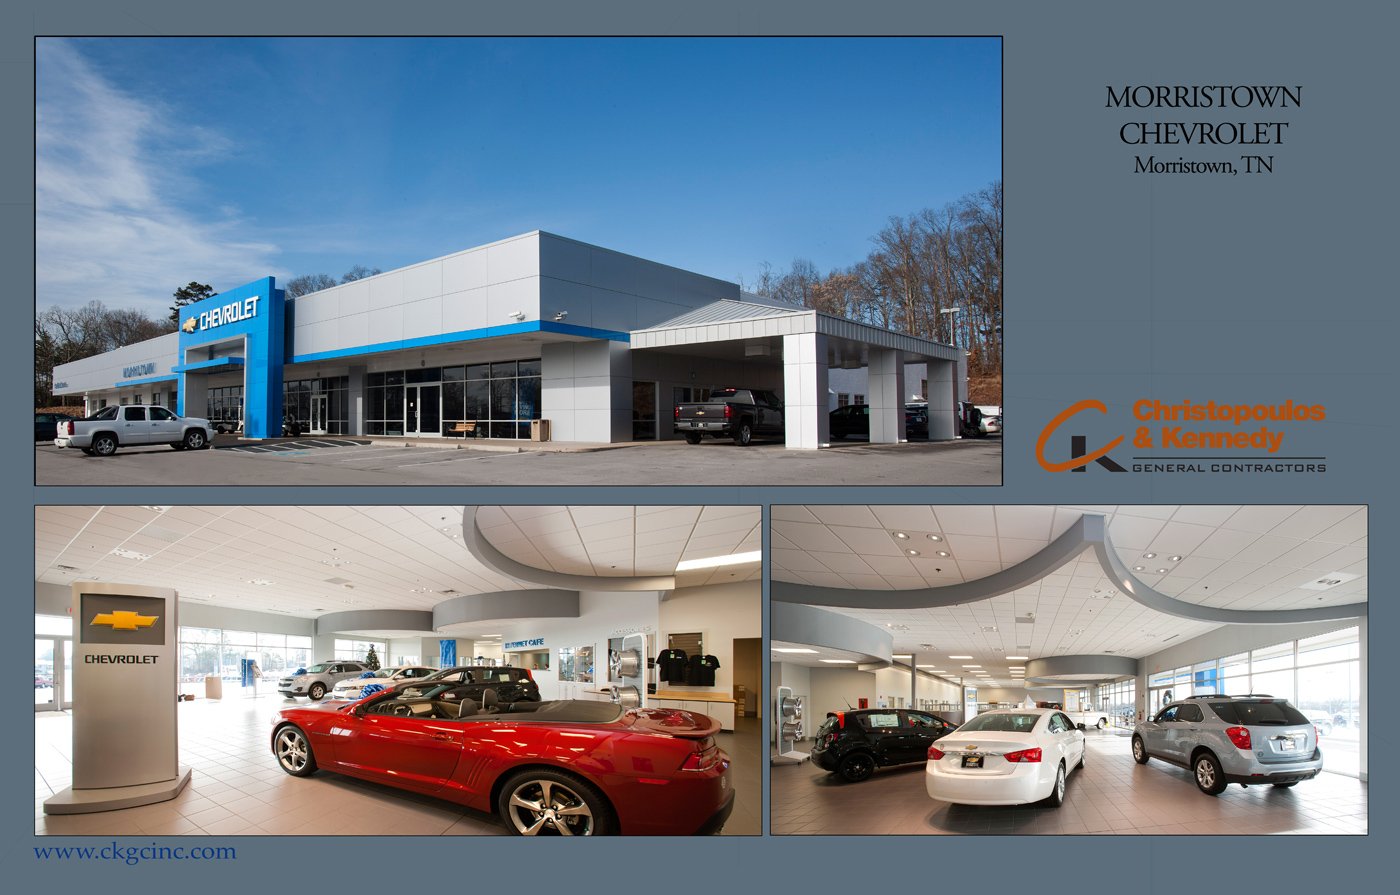 Morristown Chevrolet